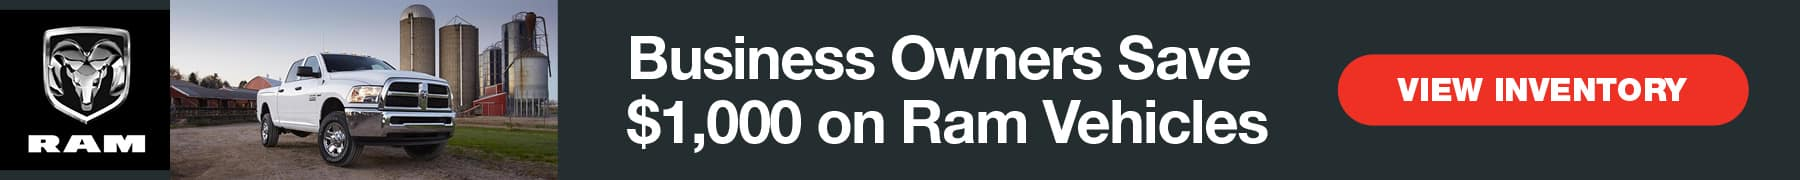 Business Owners Save $1,000 on Ram Vehicles